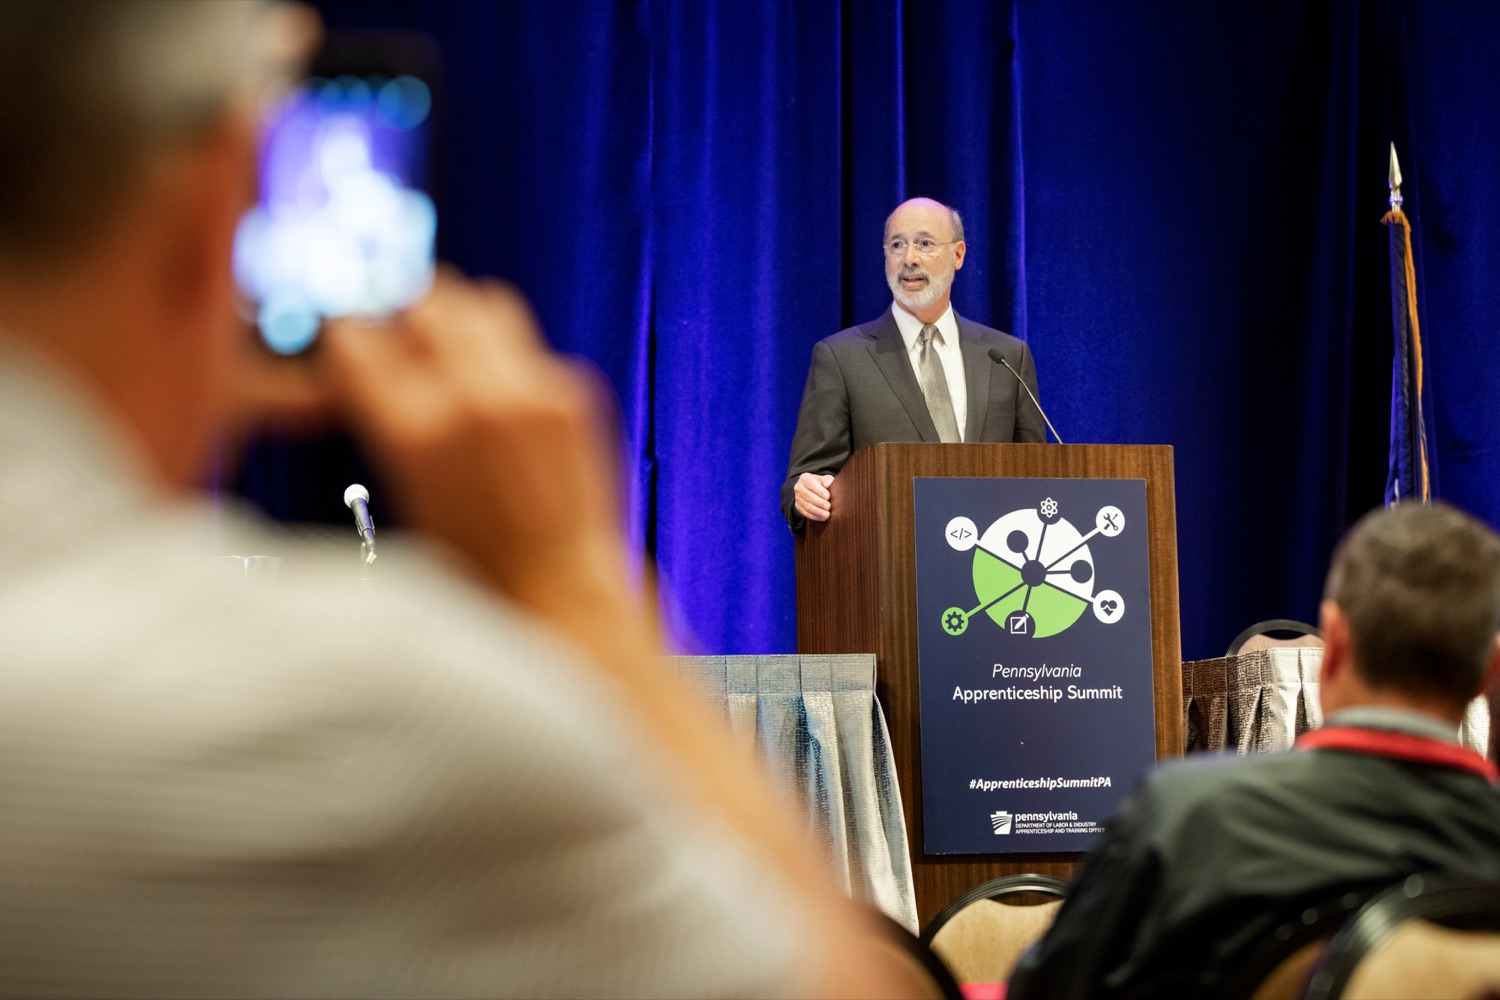 "<a href=""http://filesource.abacast.com/commonwealthofpa/photo/17520_LandI_Apprenticeships_NK_008.JPG"" target=""_blank"">⇣ Download Photo<br></a>Pennsylvania Governor Tom Wolf speaks during the 2019 Pennsylvania Apprenticeship Summit at Hershey Lodge on Thursday, October 31, 2019."